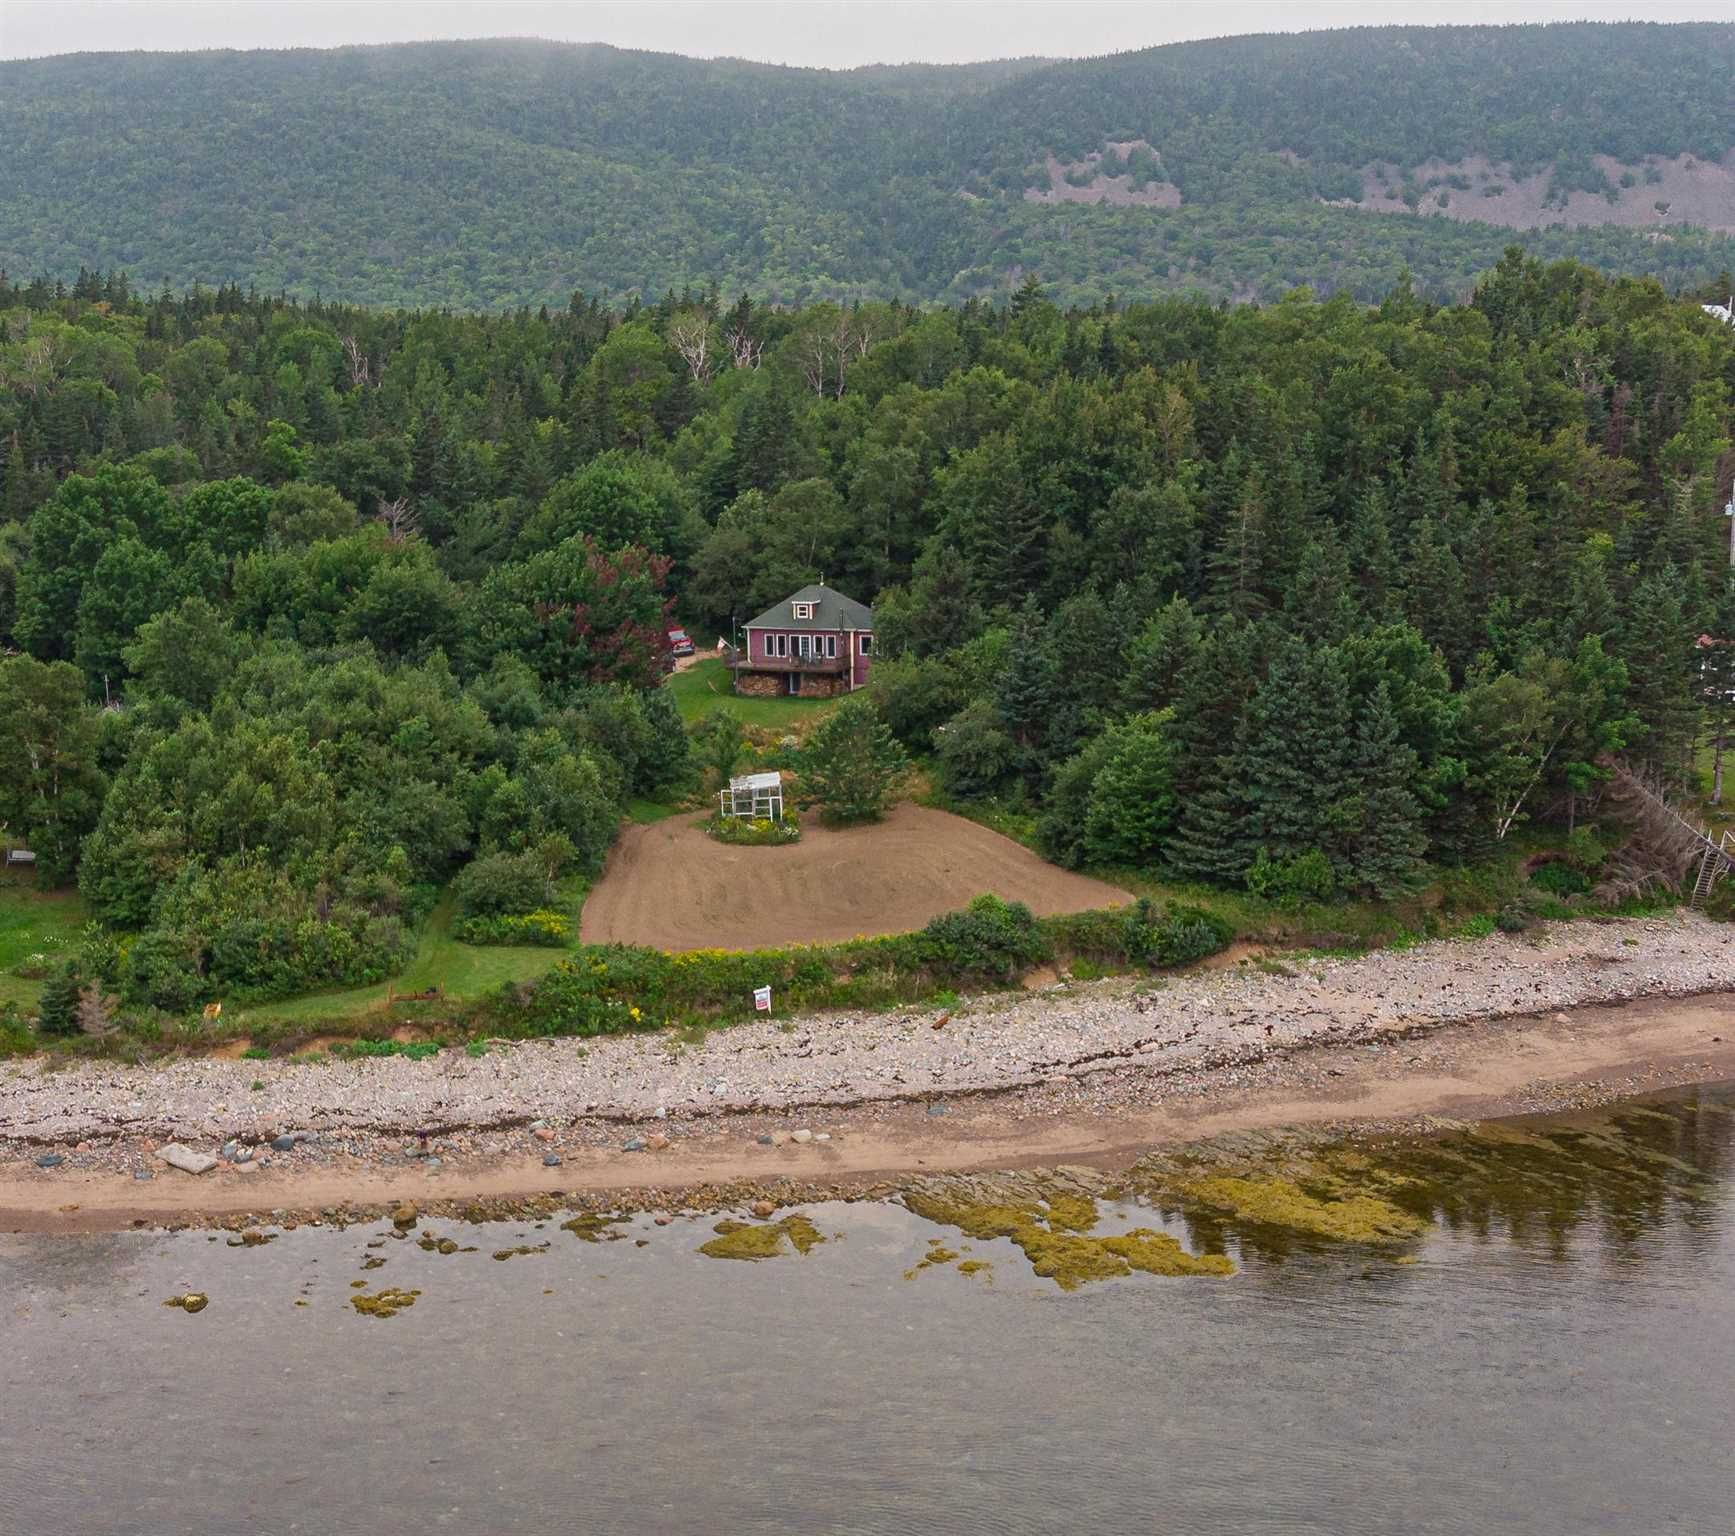 Main Photo: 1660 NEW CAMPBELLTON Road in Cape Dauphin: 209-Victoria County / Baddeck Residential for sale (Cape Breton)  : MLS®# 202115282